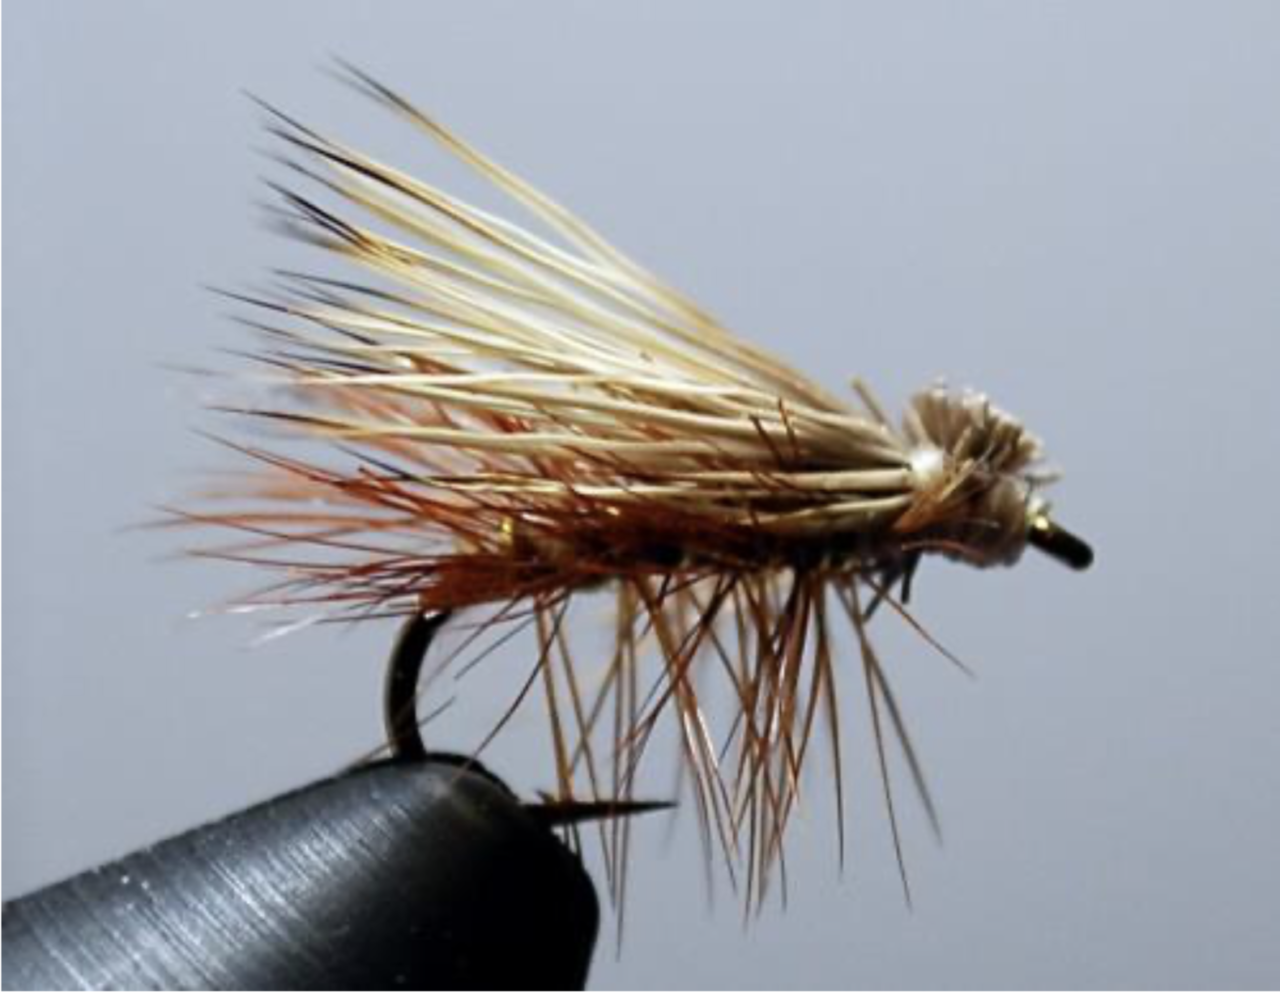 Elk Hair Caddis di fattura simile all'originale di Al Troth (foto dal web)